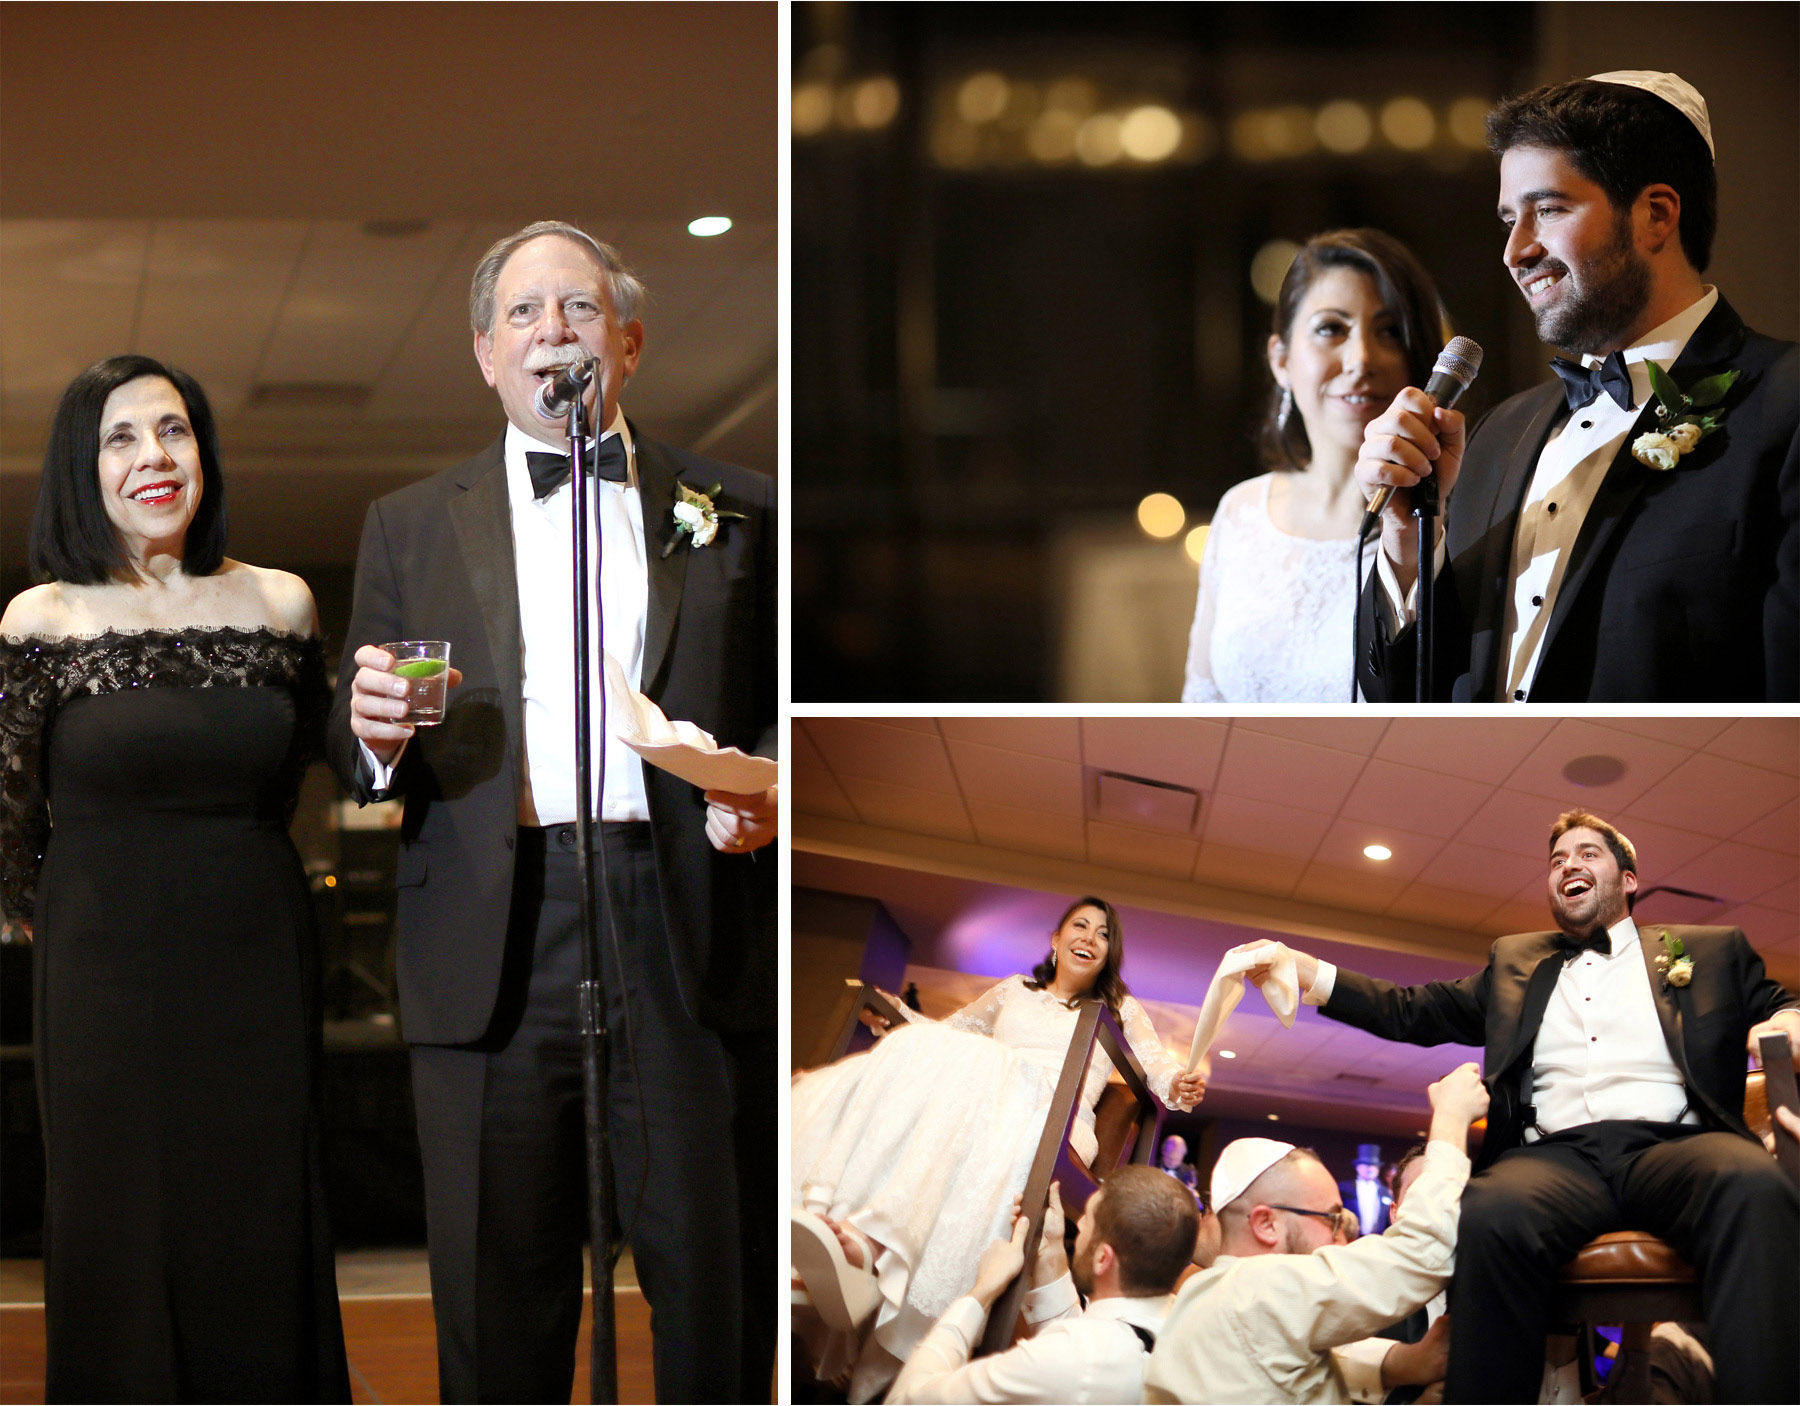 15-Minneapolis-Minnesota-Wedding-Photographer-by-Andrew-Vick-Photography-Winter-Hyatt-Regency-Hotel-Reception-Bride-Groom-Mother-Father-Parents-Speeches-Horah-Dance-Yarmulke-Amy-and-Jordan.jpg